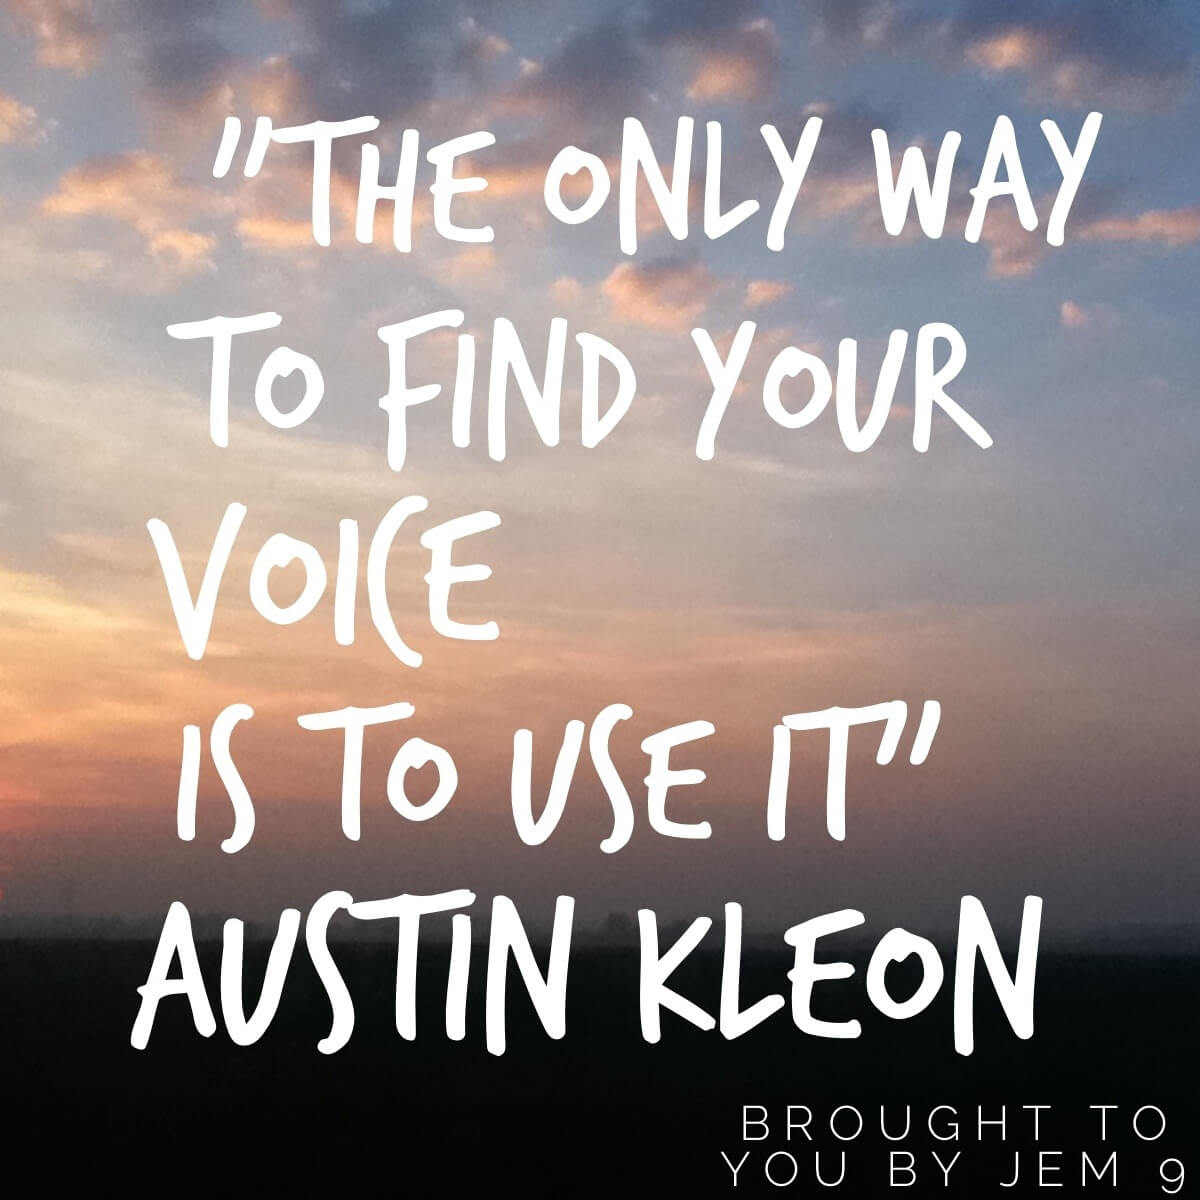 """The only way to find your voice is to use it."" Austin Kleon"